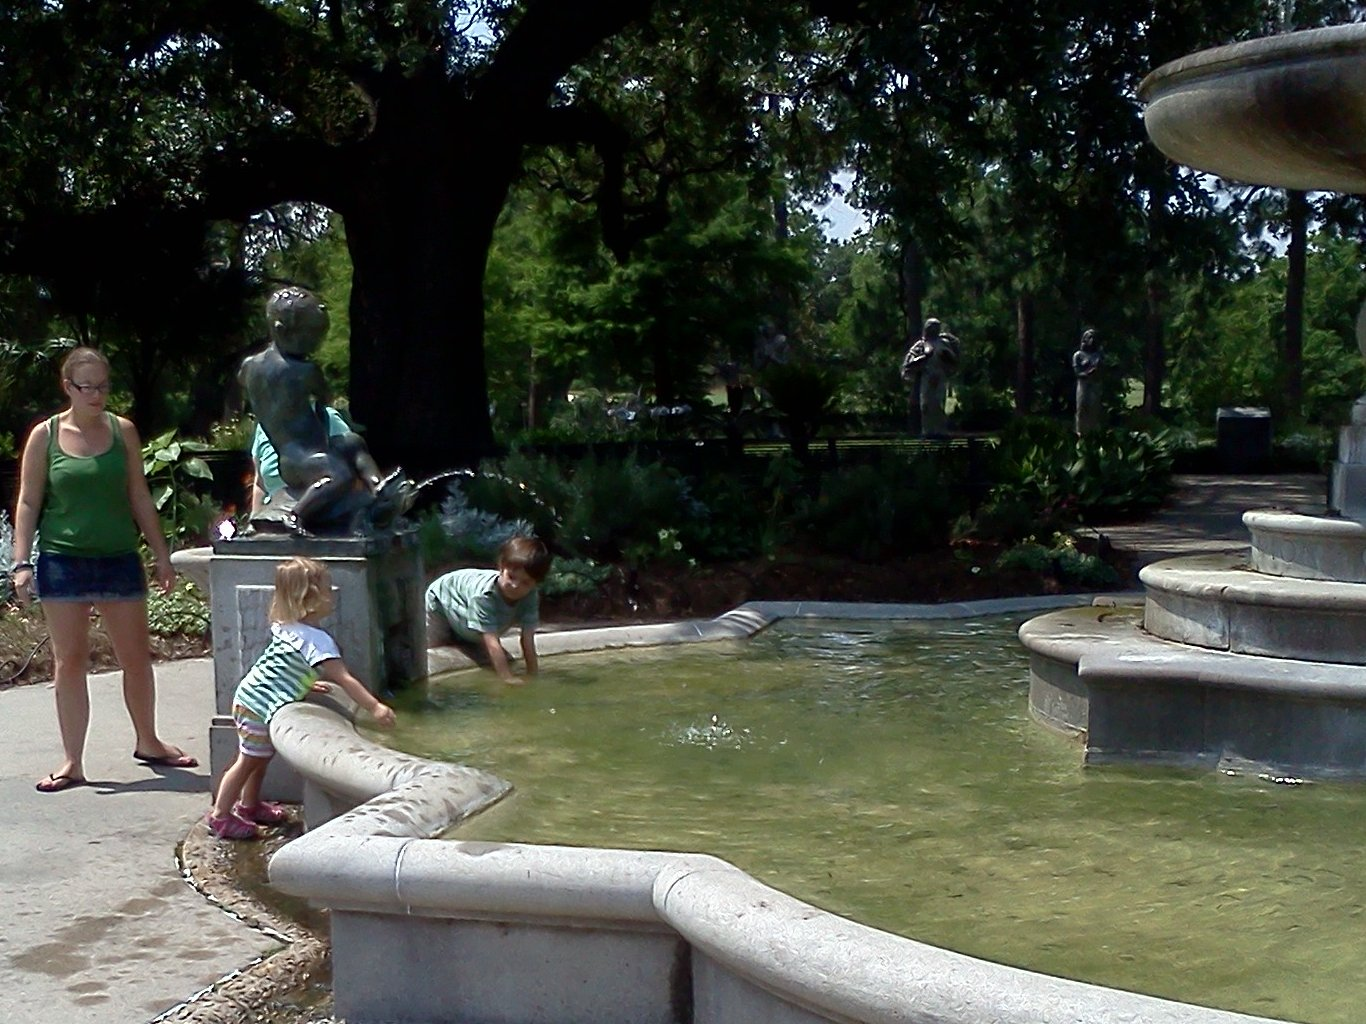 Children playing at the fountain